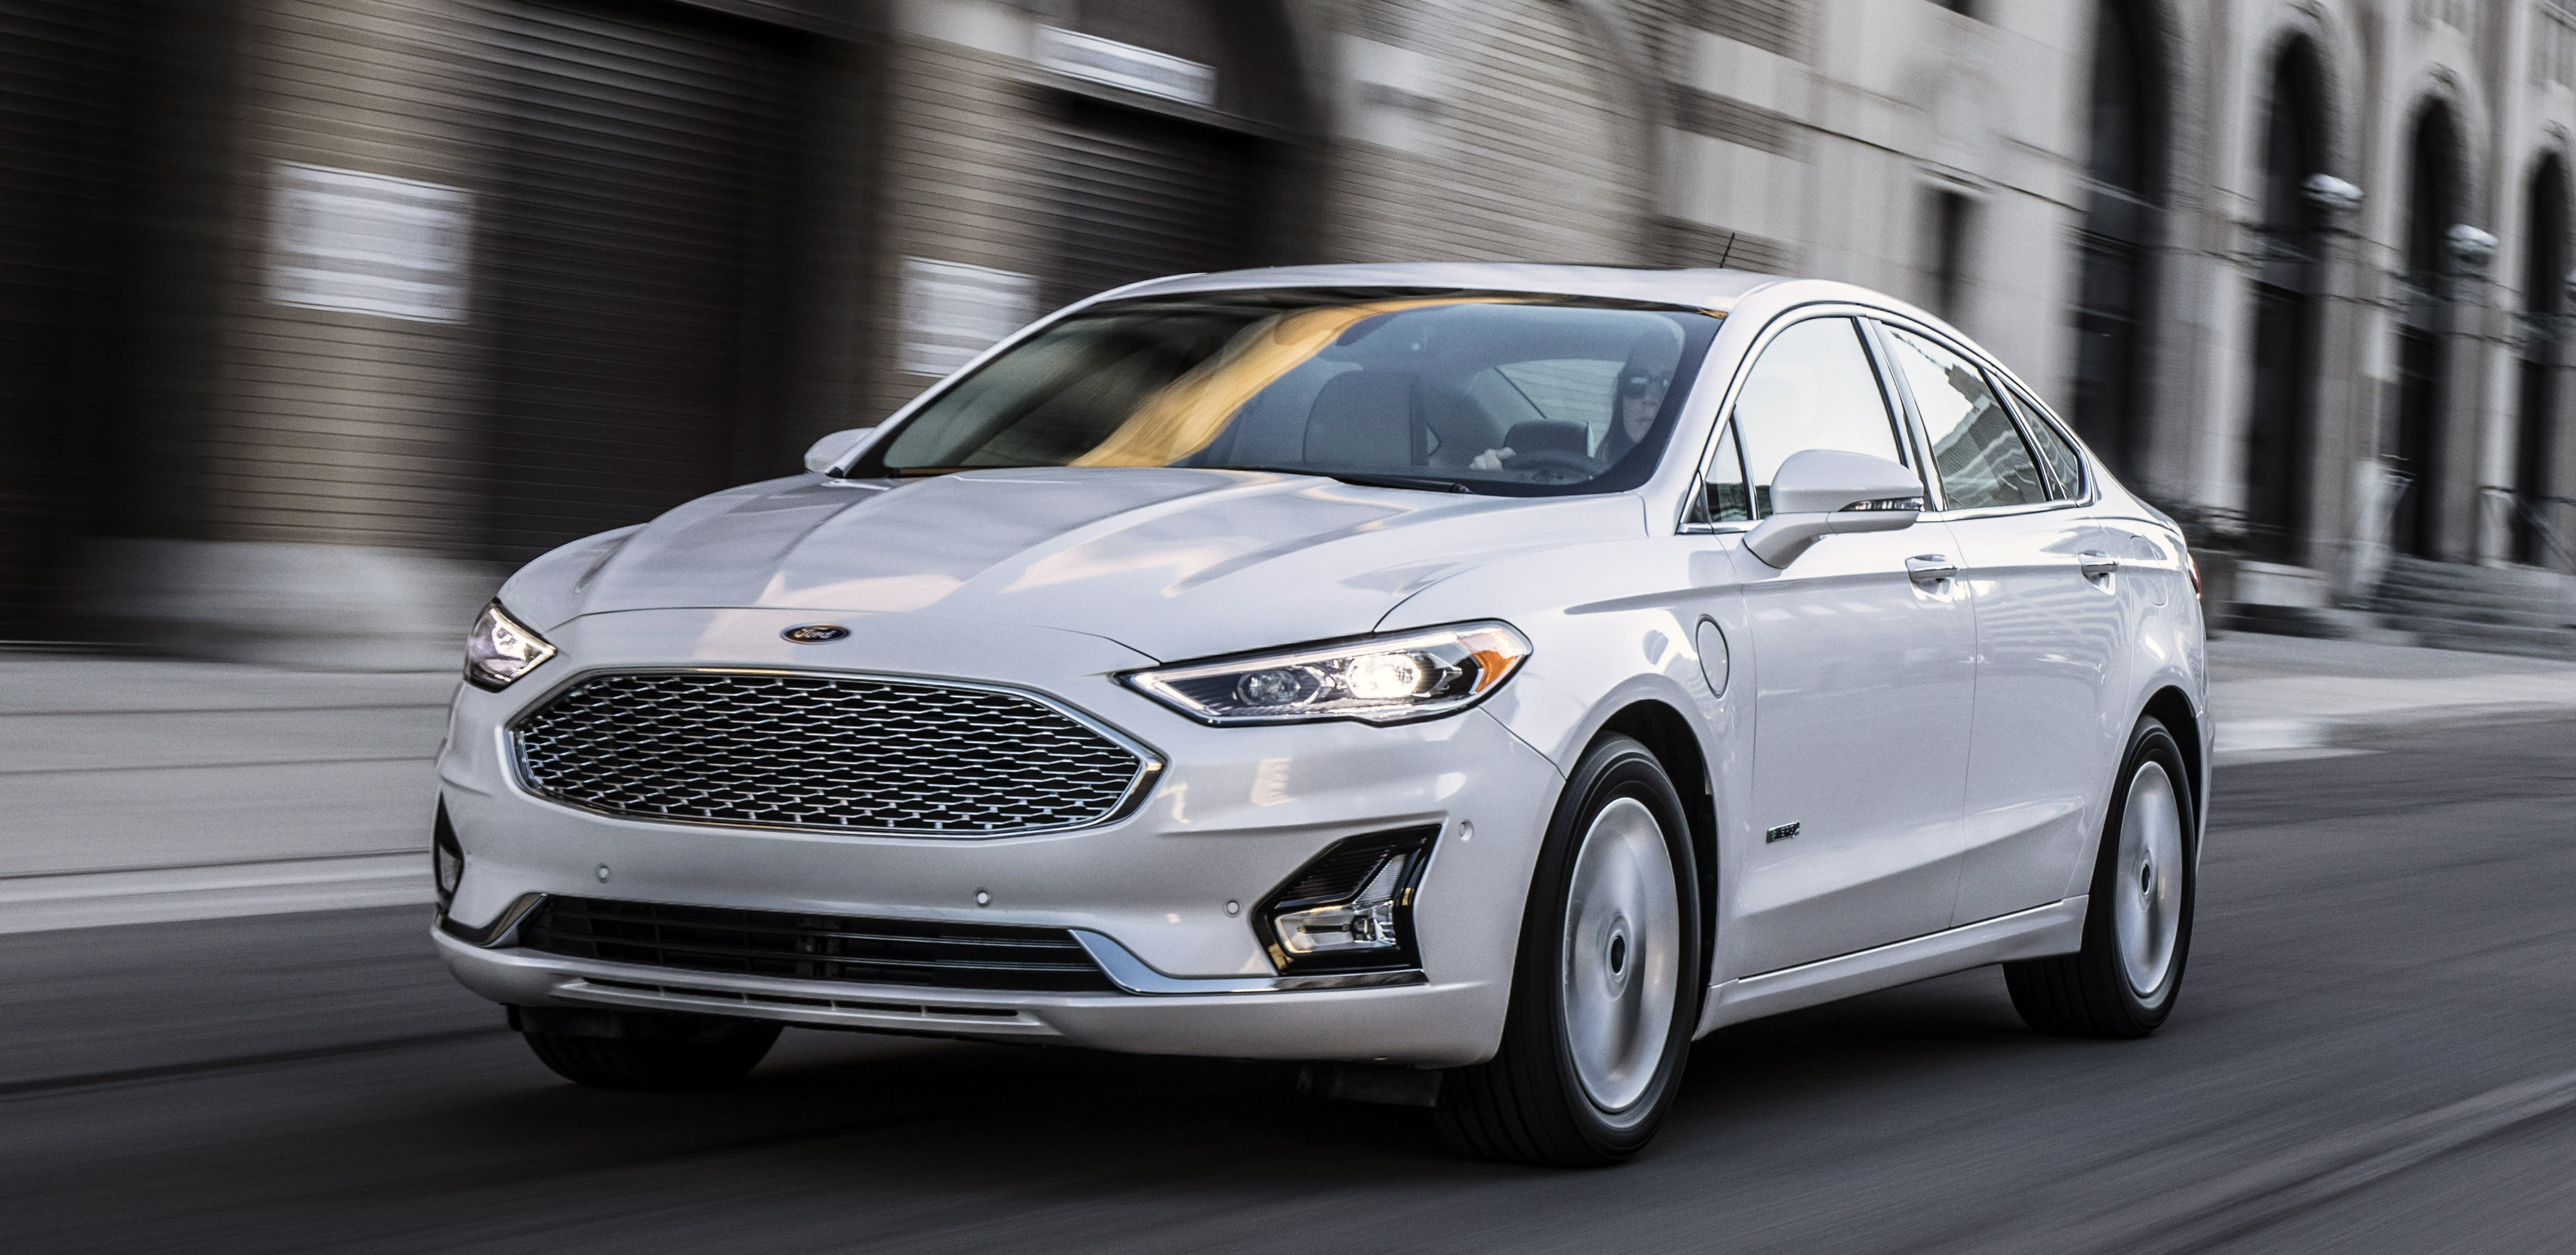 Like Its Stock Price, Ford Motor Company's Quality Is Up in 2019